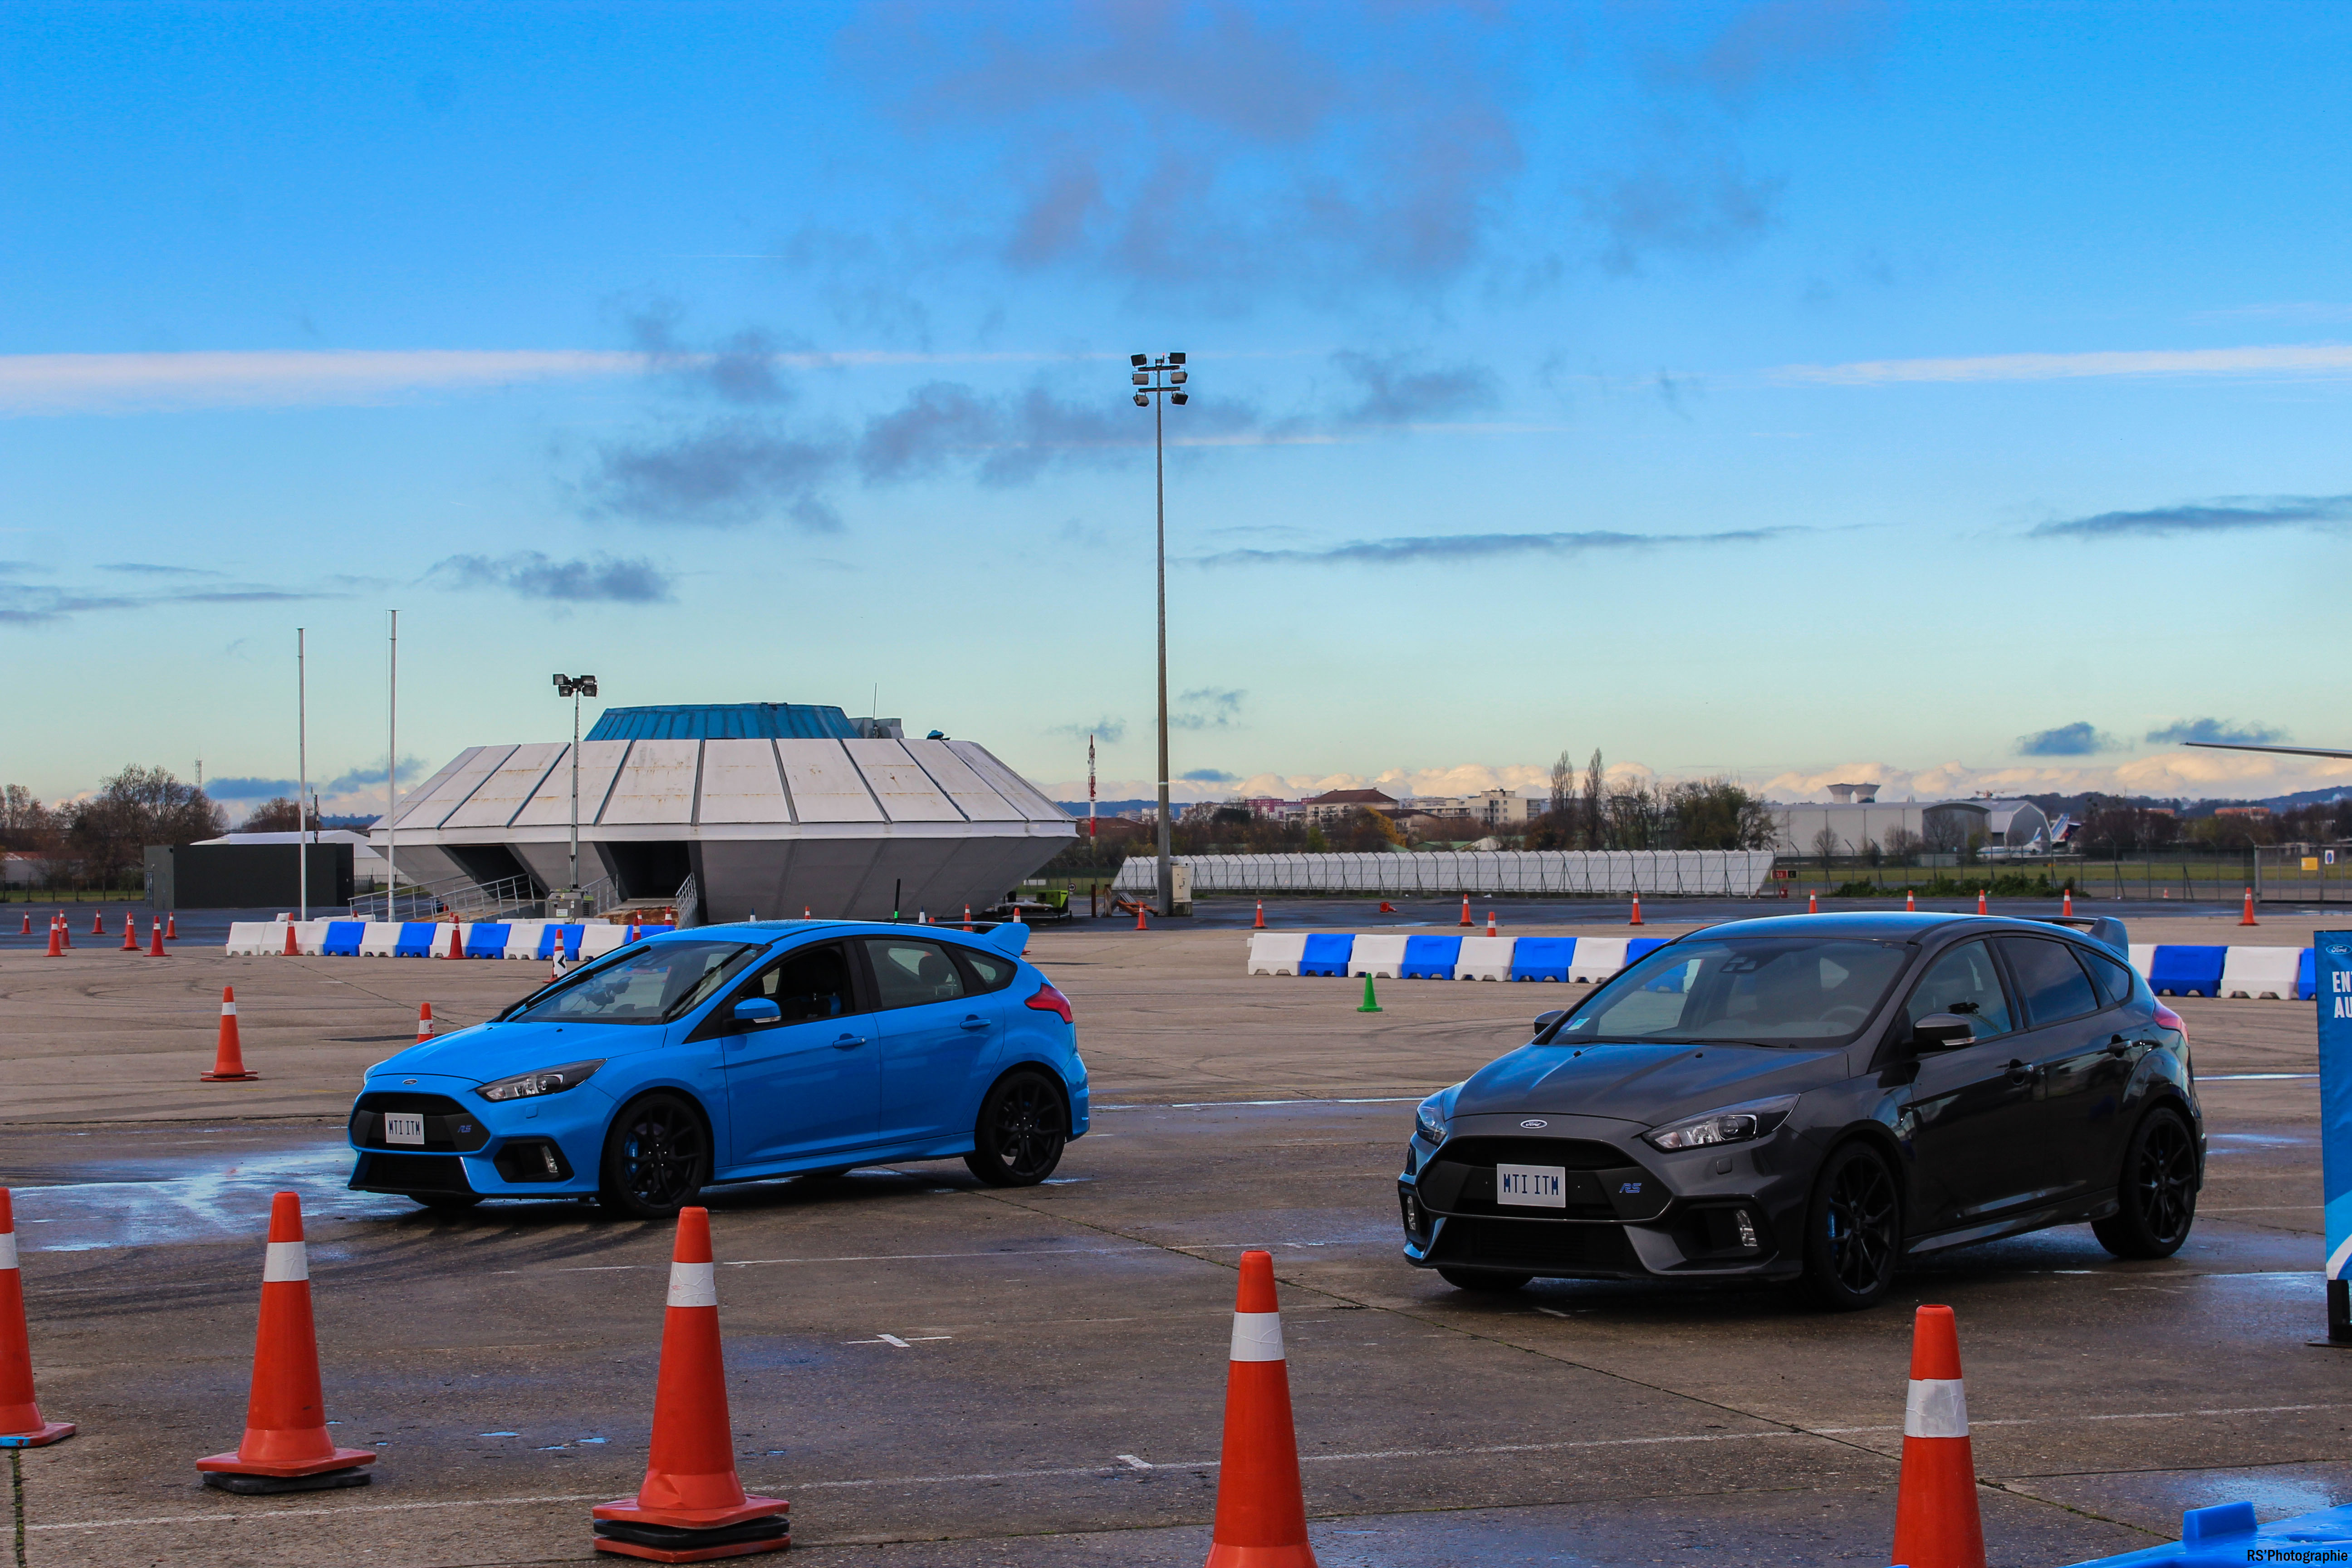 gofaster5-opération-go-faster-ford-focus-rs-avant-front-Arnaud Demasier-RSPhotographie